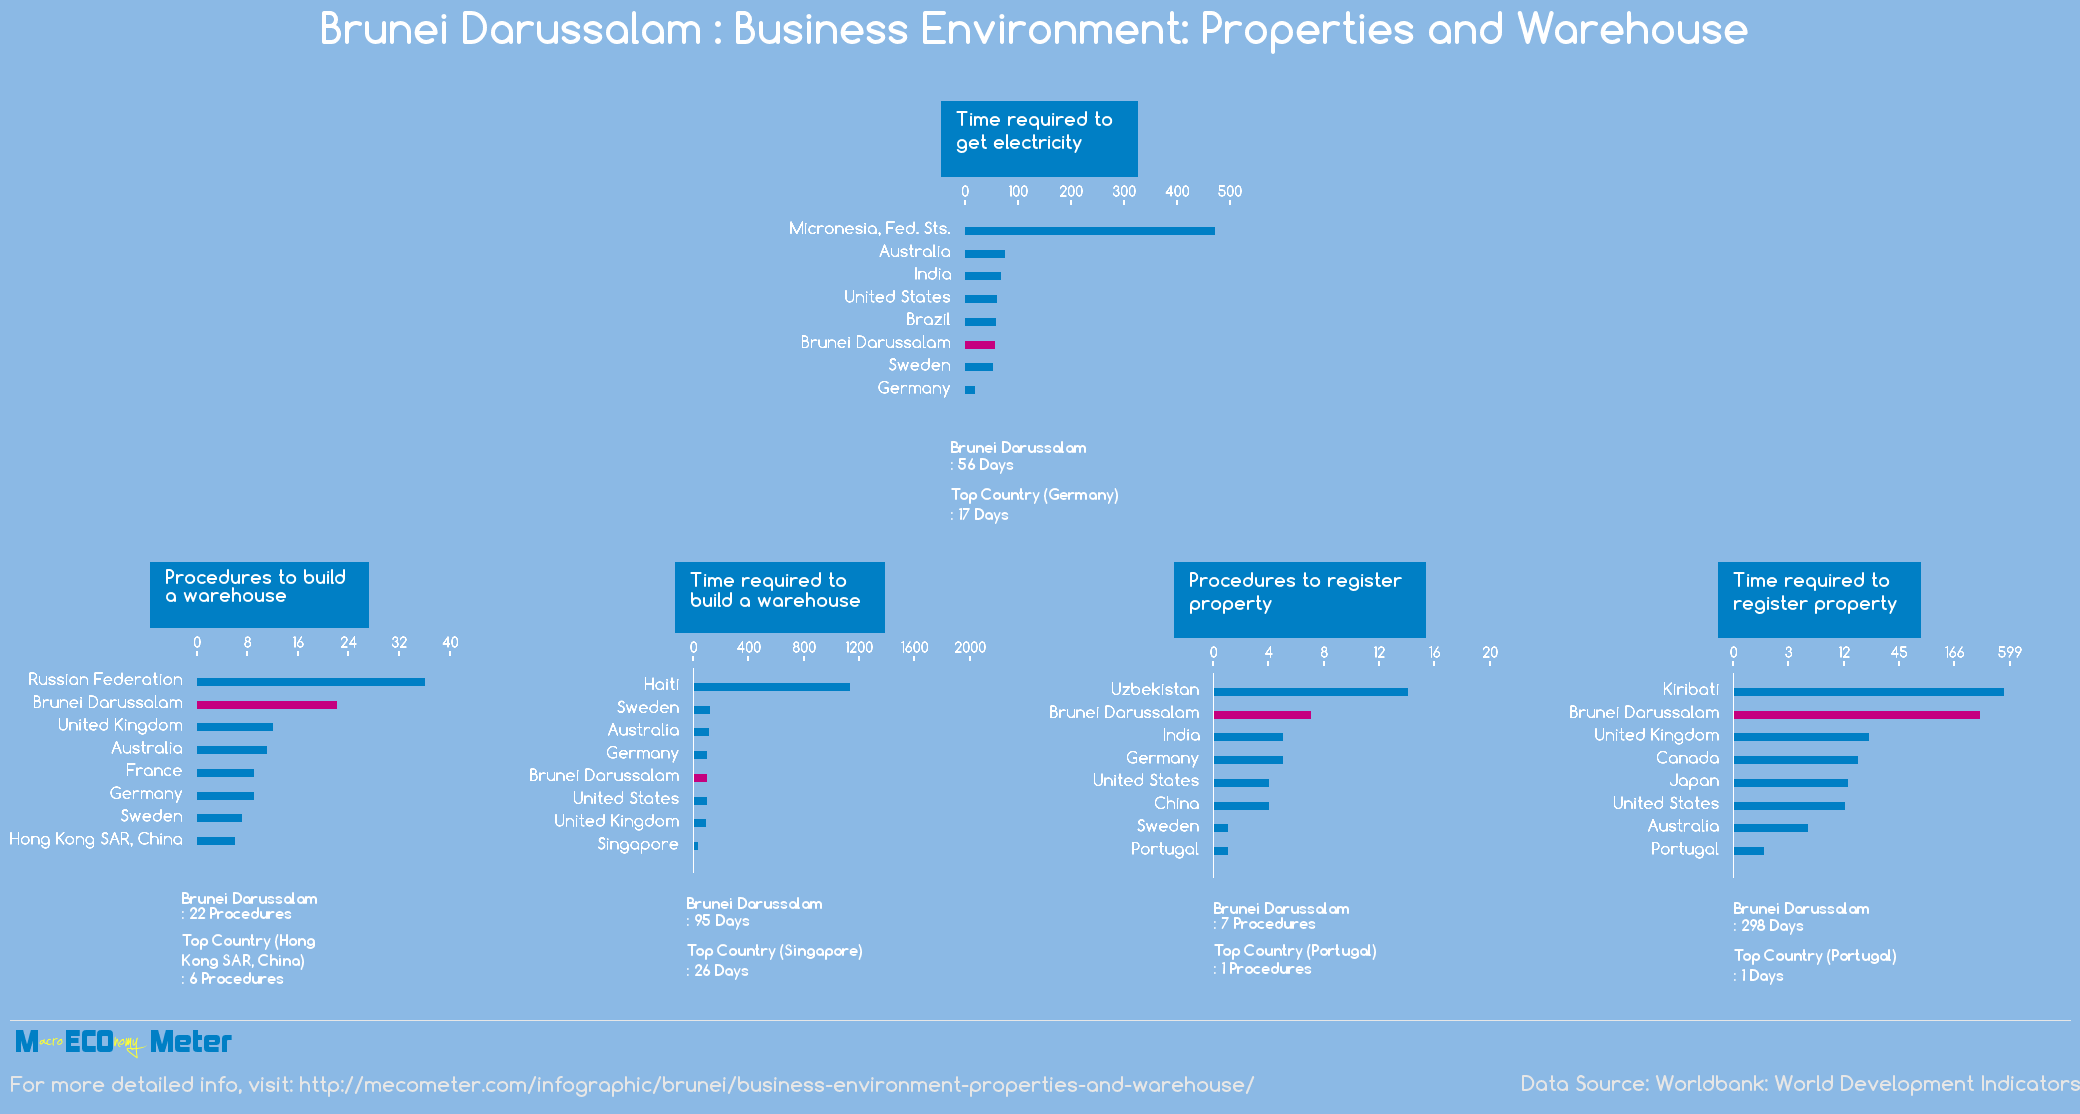 Brunei Darussalam : Business Environment: Properties and Warehouse